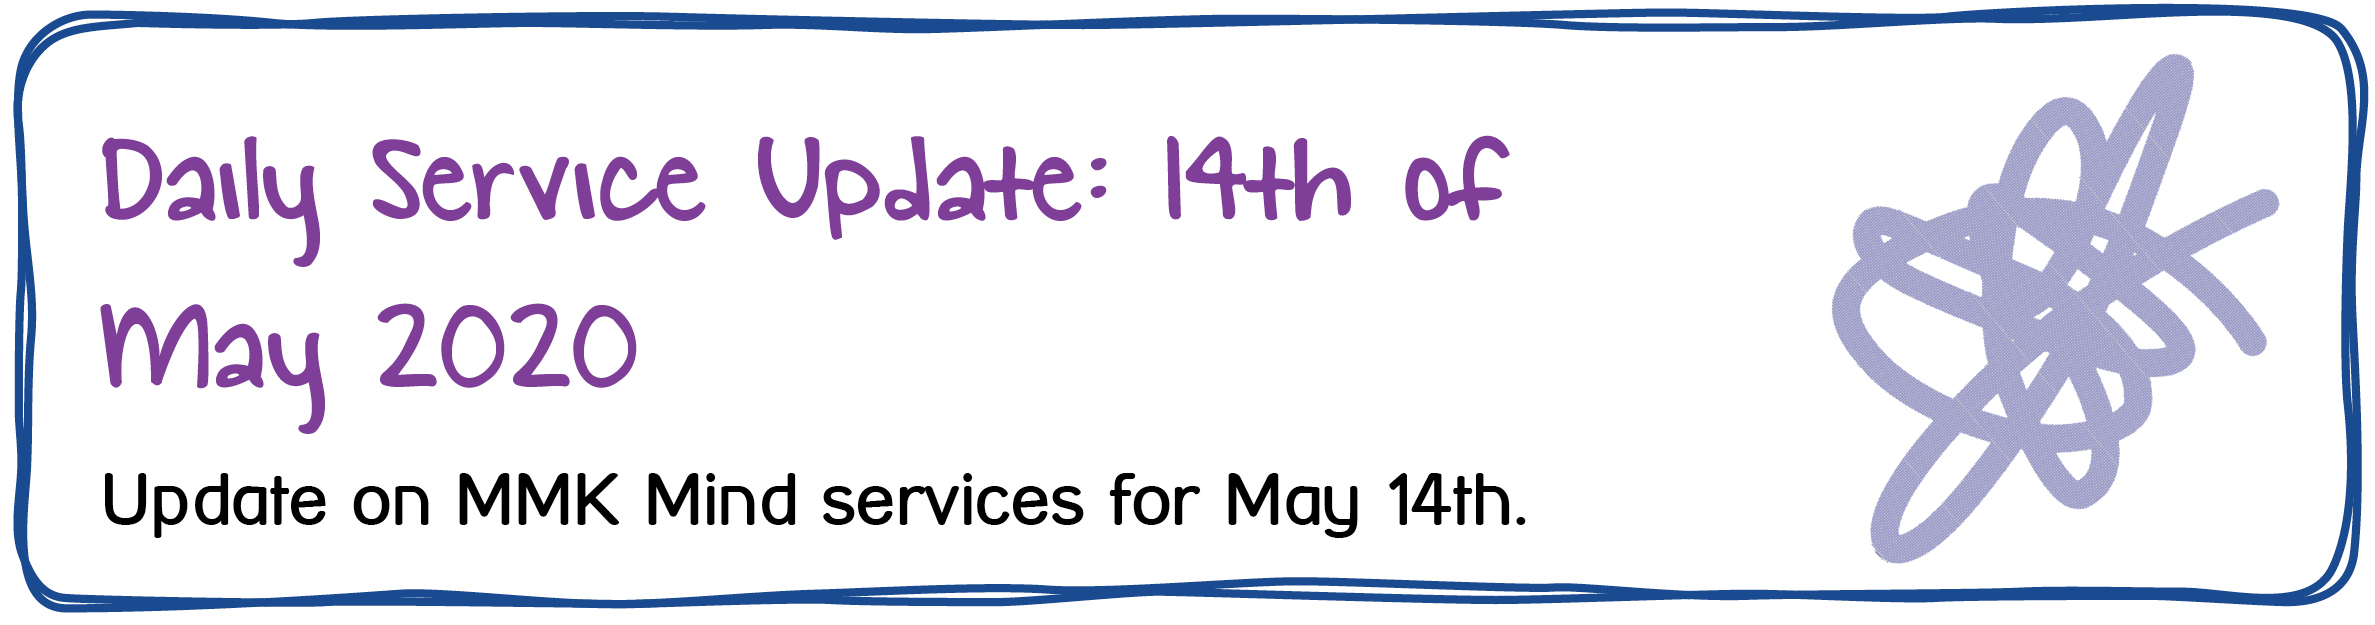 Daily Service Update: 14th of May 2020. Update on MMK Mind services for May 14th.